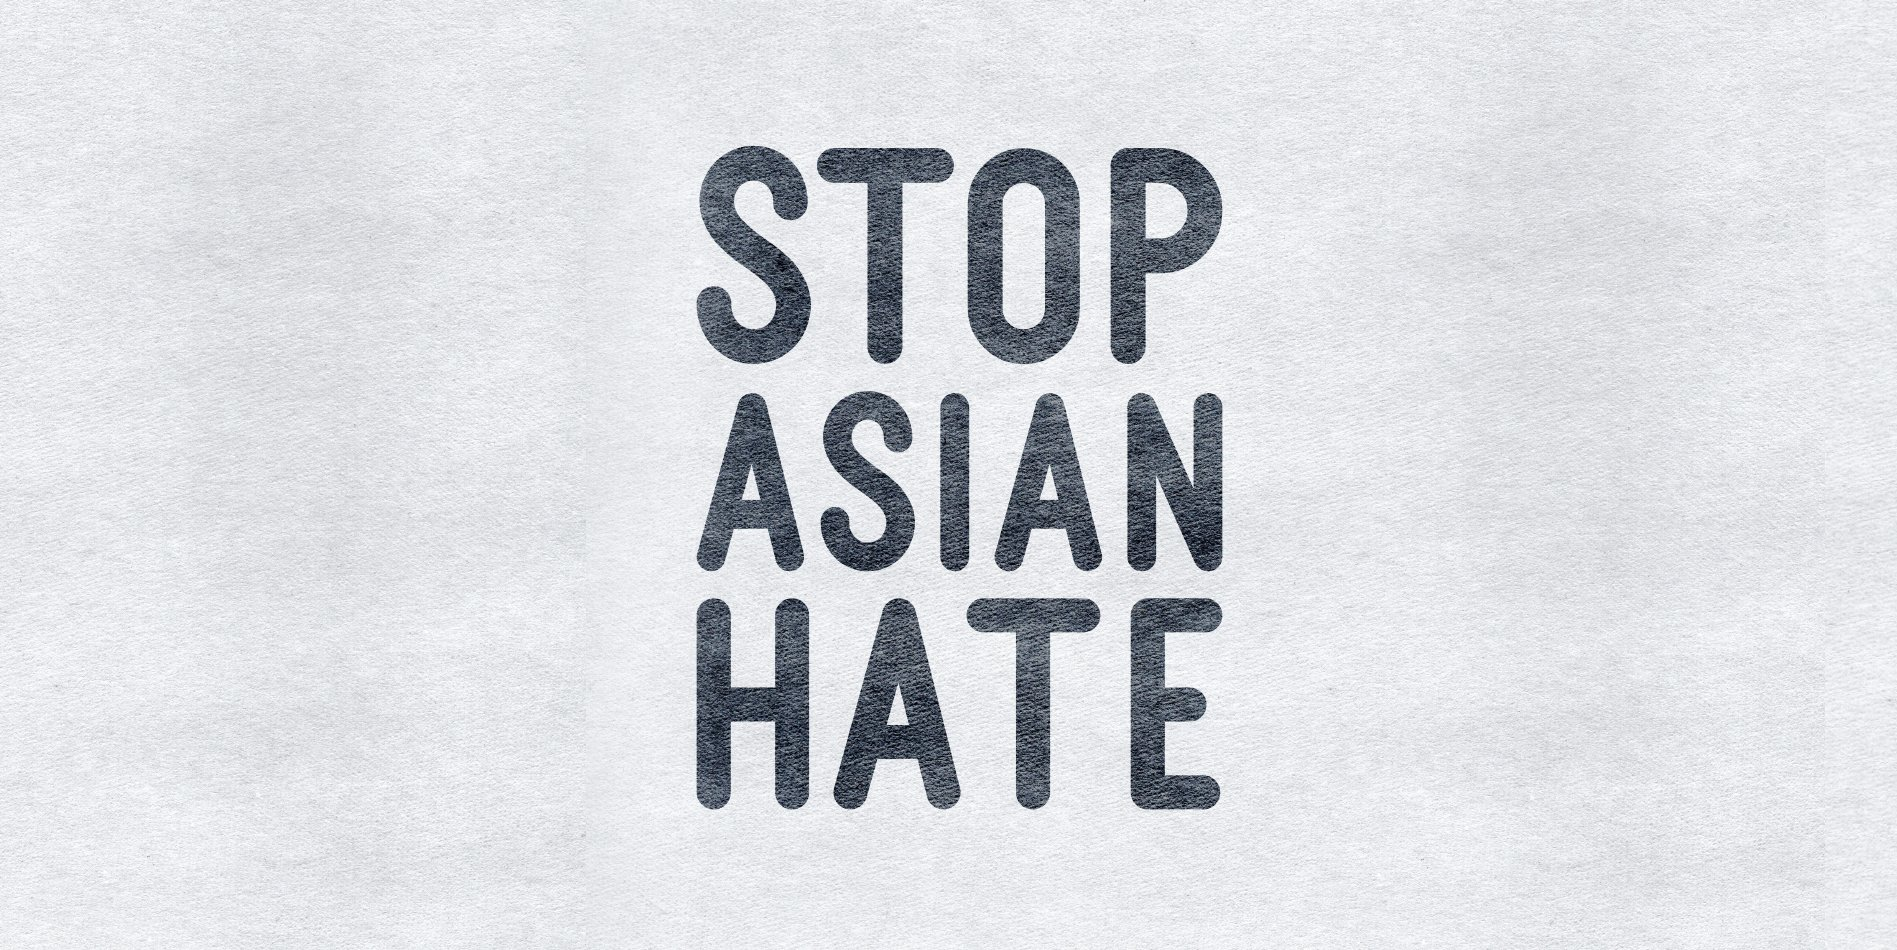 It's time to #StopAsianHate: Speaking Out On Anti-Asian Racism